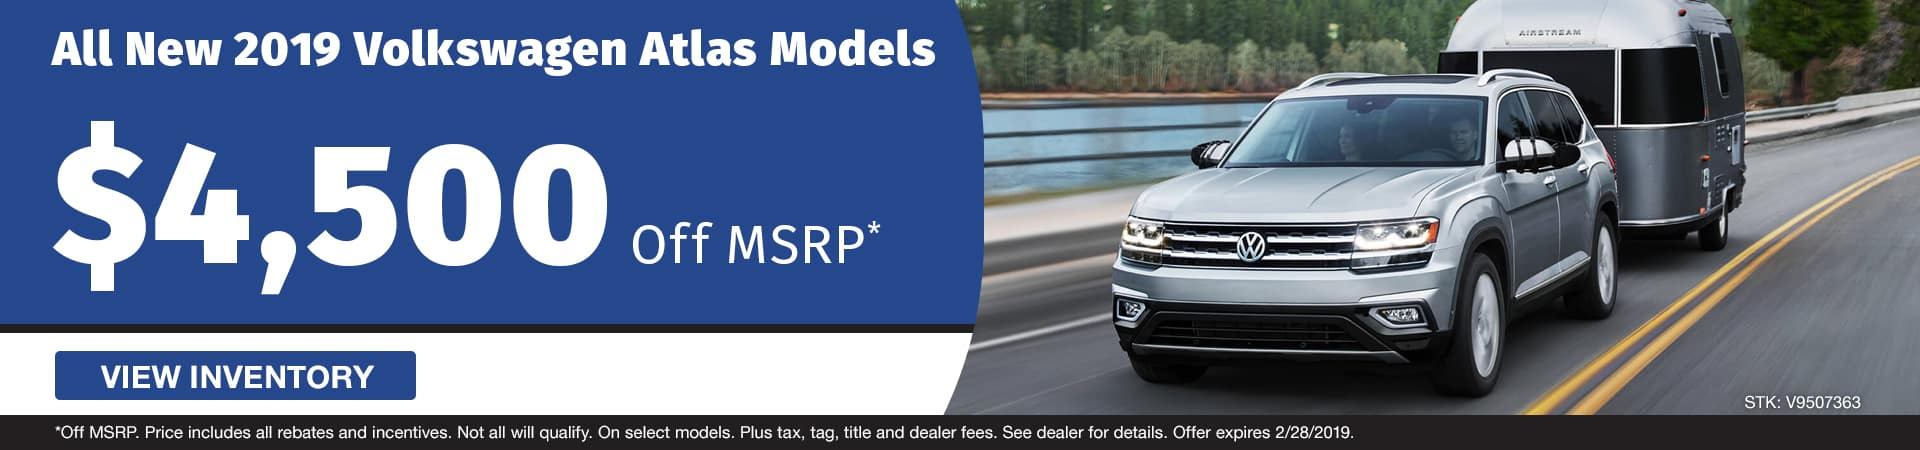 Save $4,500 off a new 2019 Volkswagen Atlas model in Murfreesboro TN